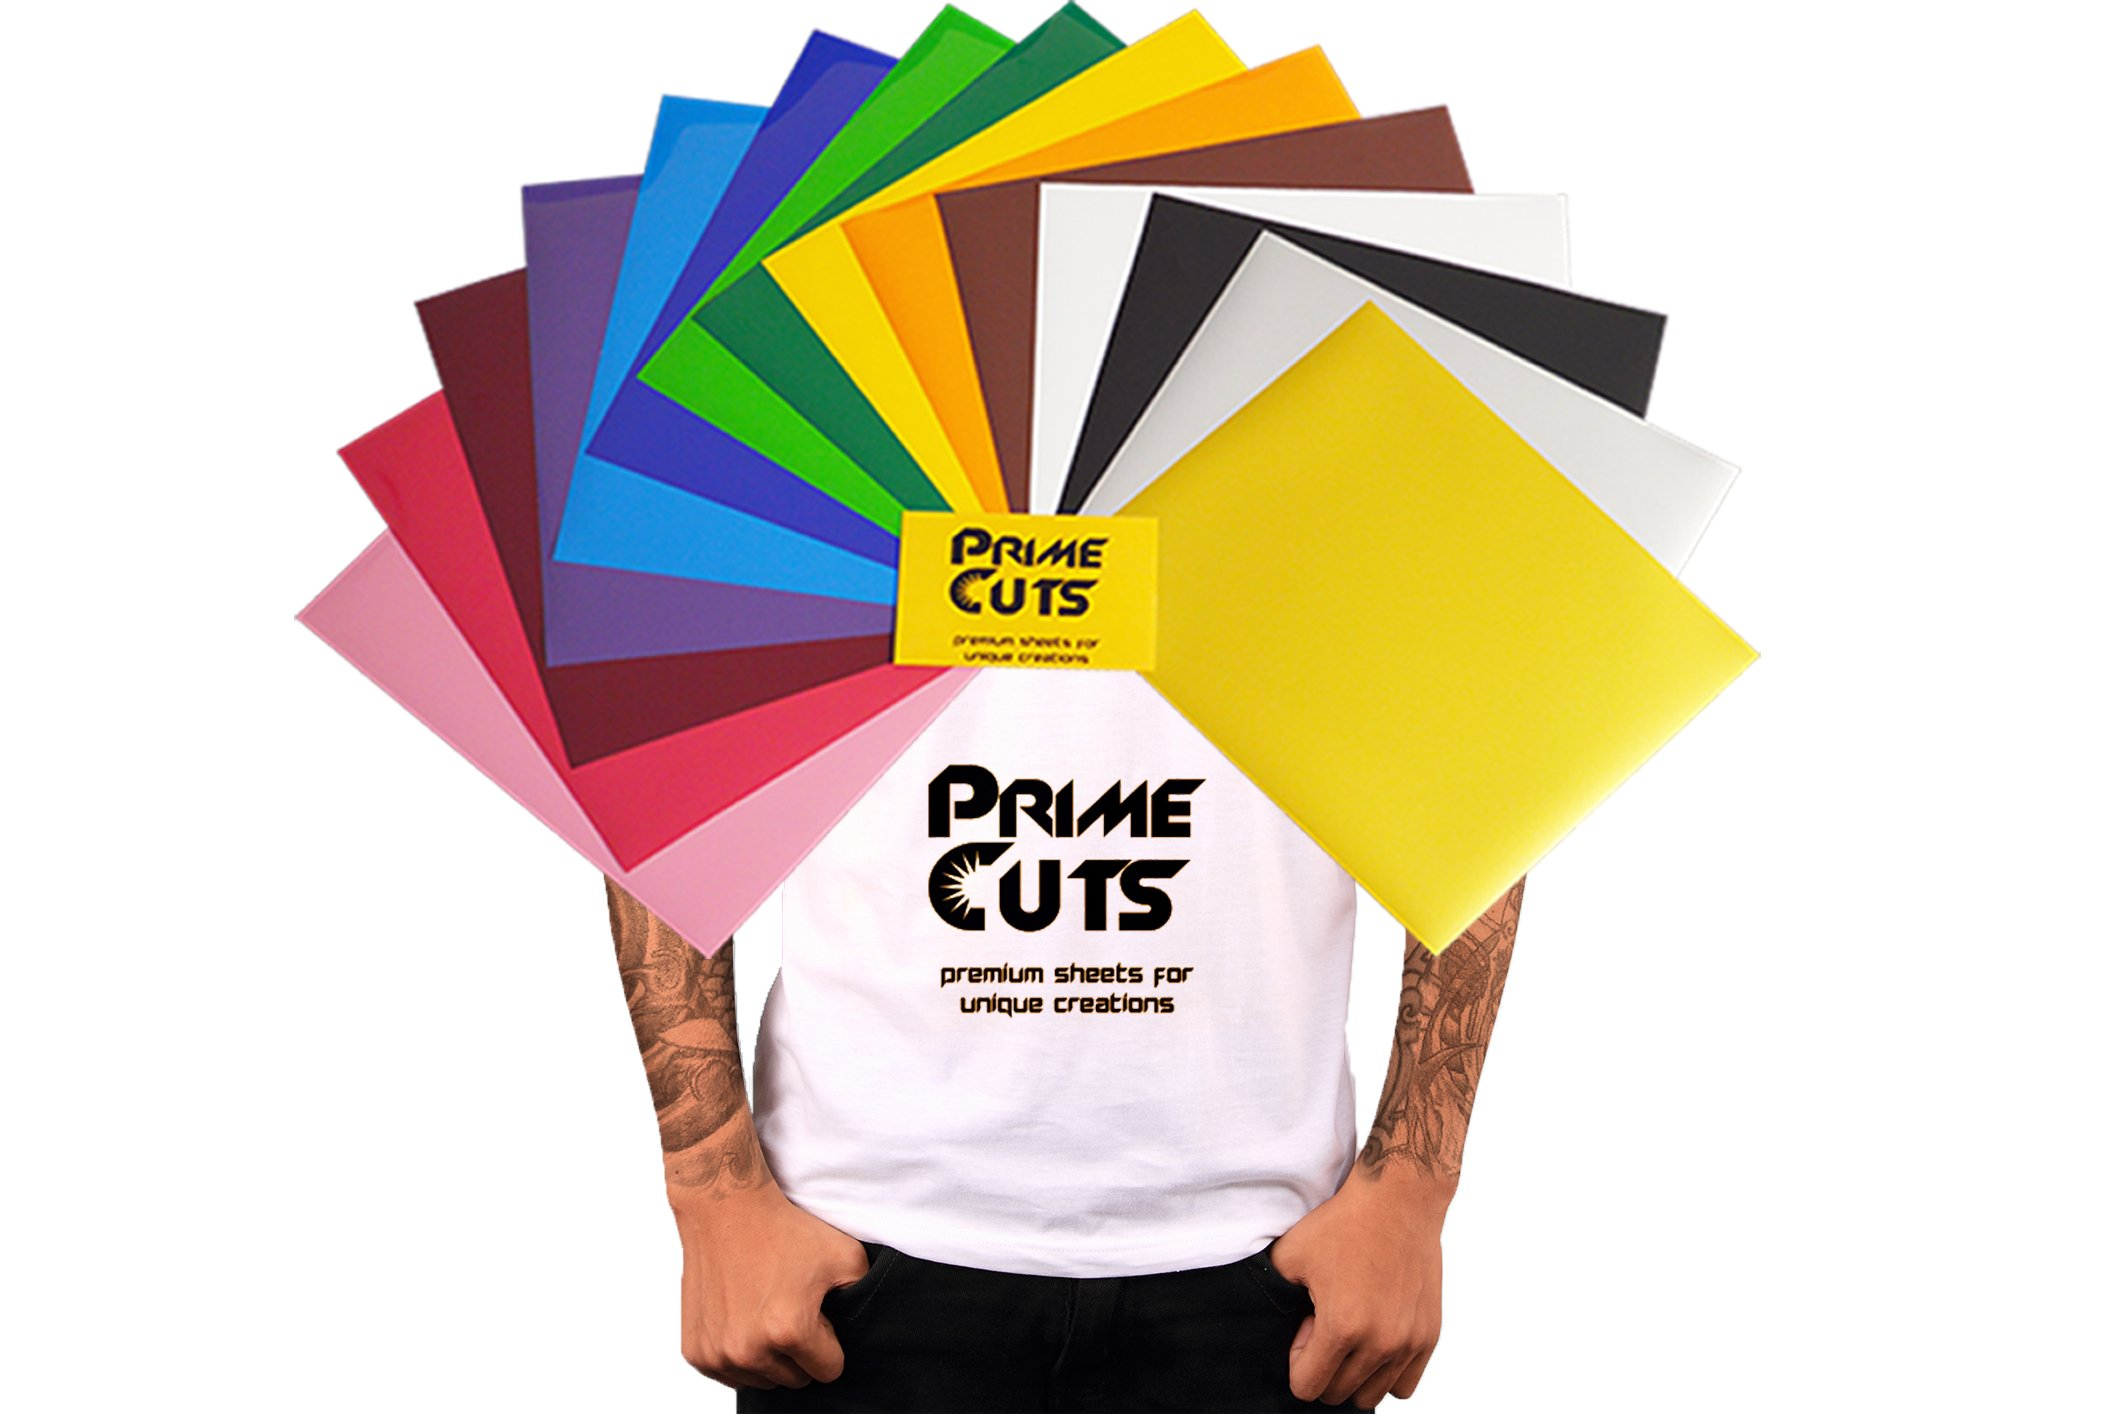 PrimeCuts HTV - 15 Heat Transfer Vinyl Sheets (Color Pack Gold Silver) 12'' x 10'' for T Shirts, Hats, Clothing - Best Iron On HTV Vinyl for Silhouette Cameo, Cricut or Heat Press Machine Tool